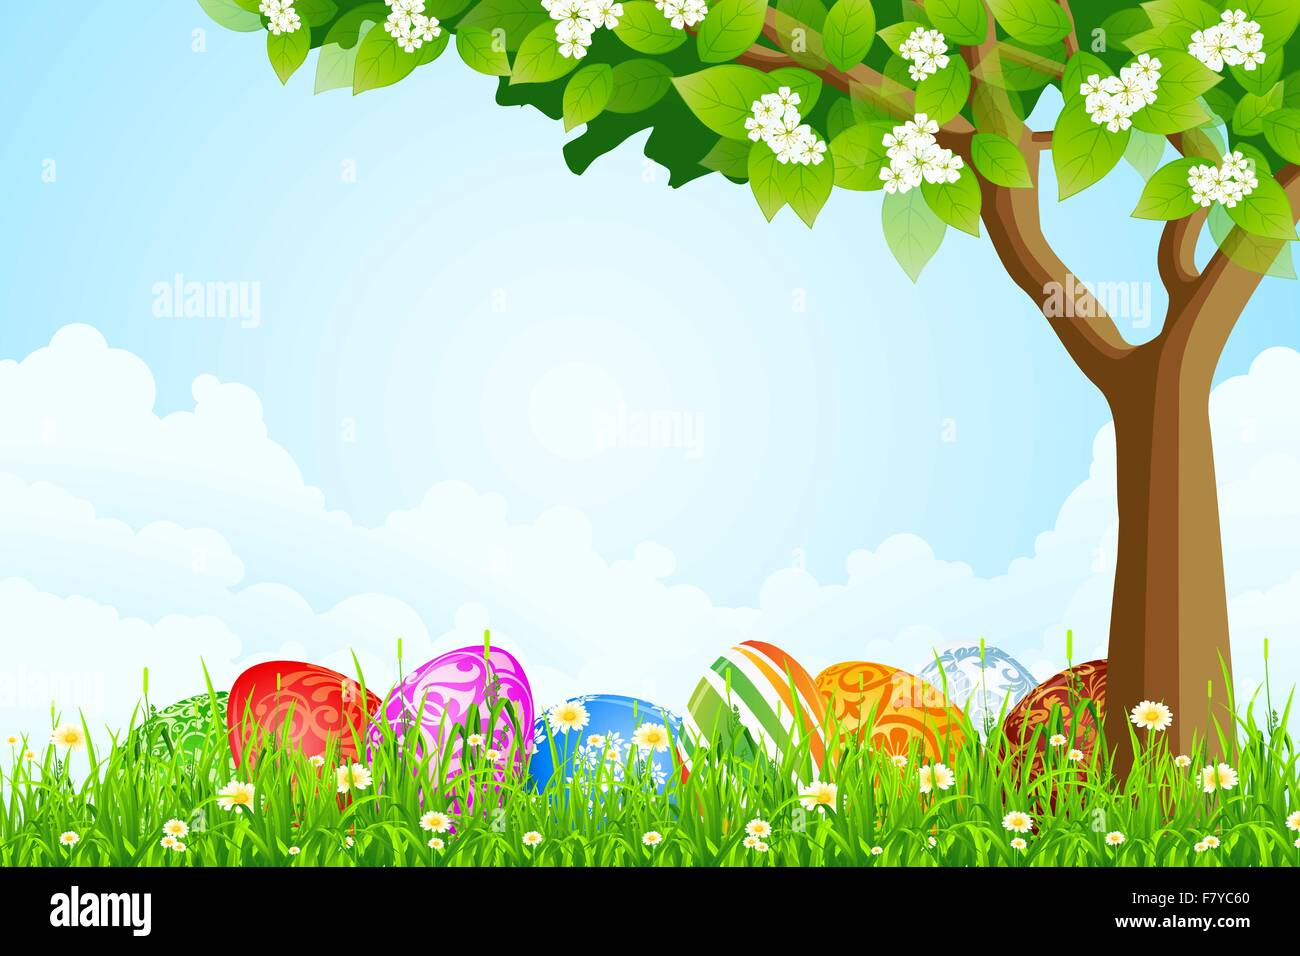 Green Tree Background With Easter Eggs Stock Vector Art